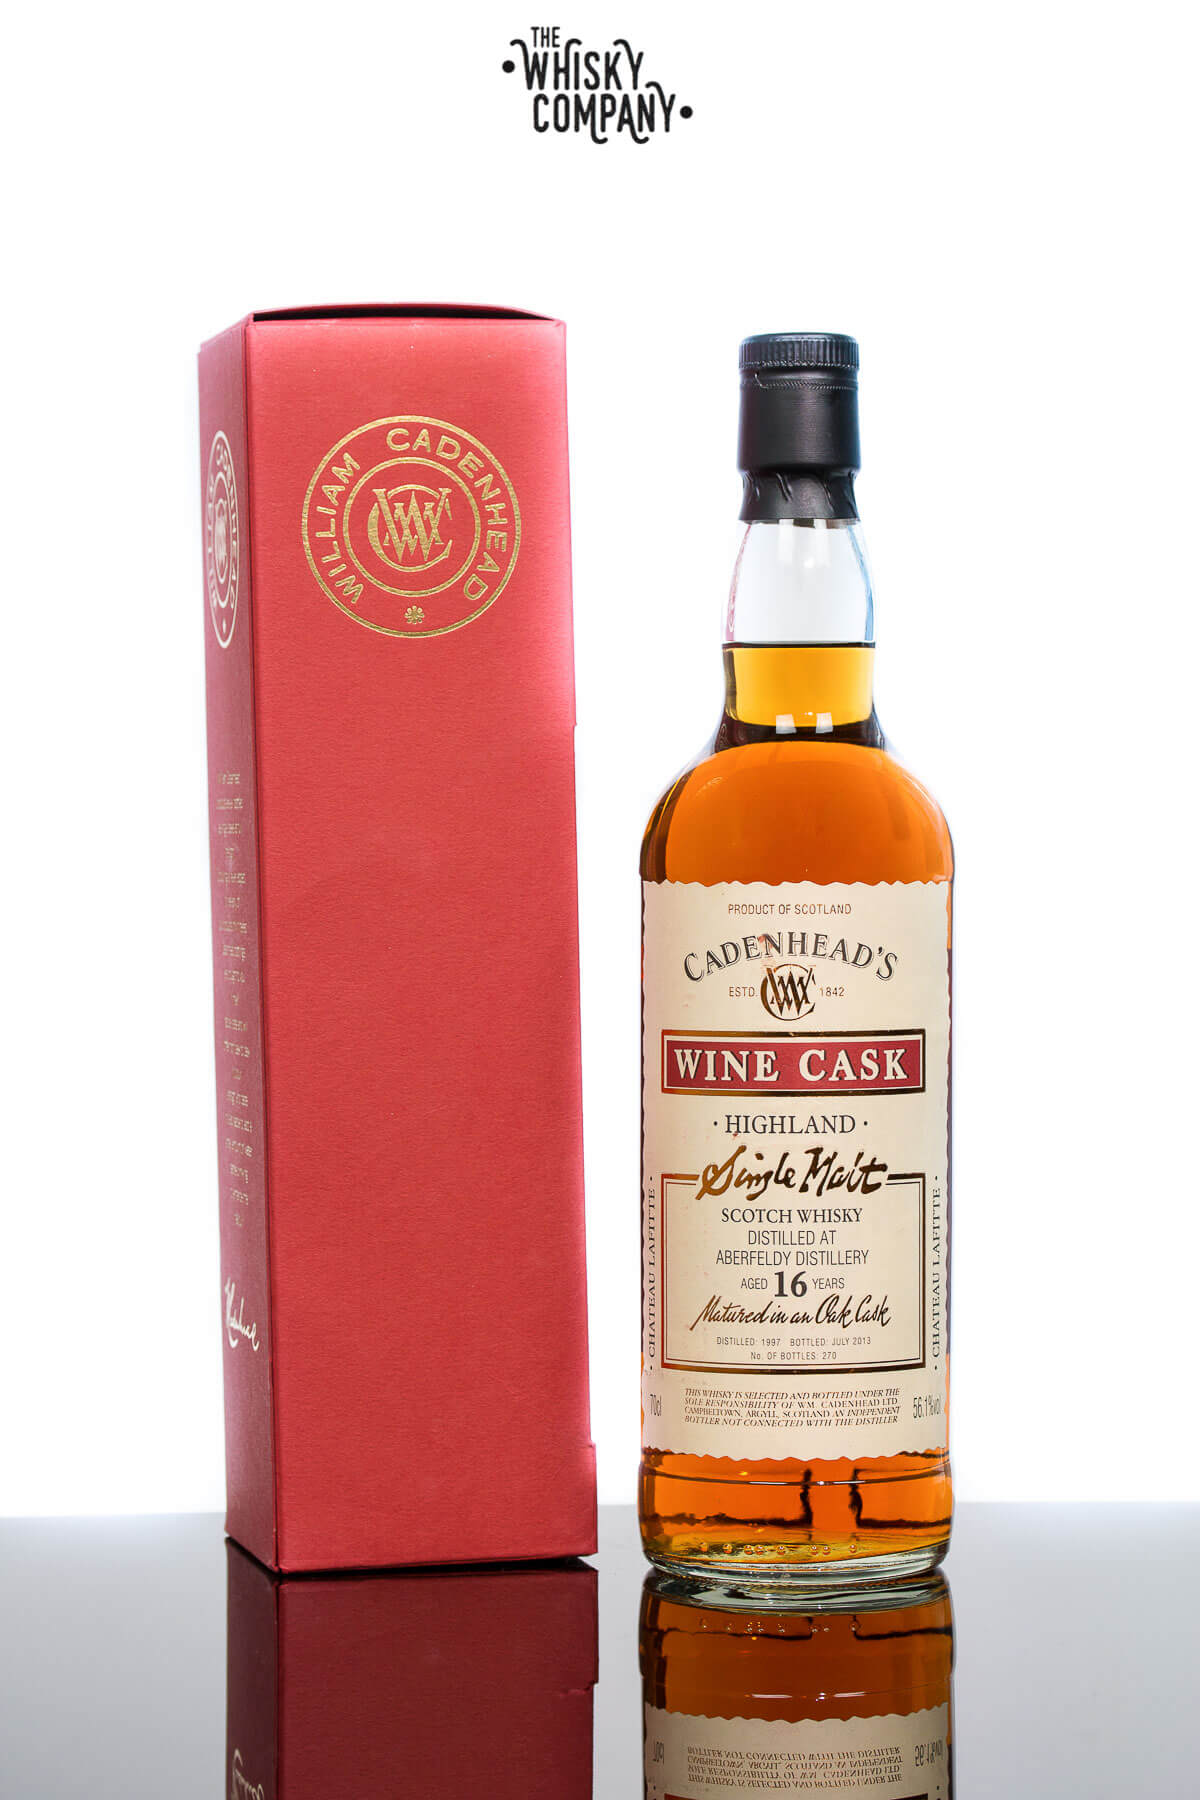 Aberfeldy Chateau Lafitte Cask Aged 16 Years Single Malt Scotch Whisky - Cadenhead's (700ml)